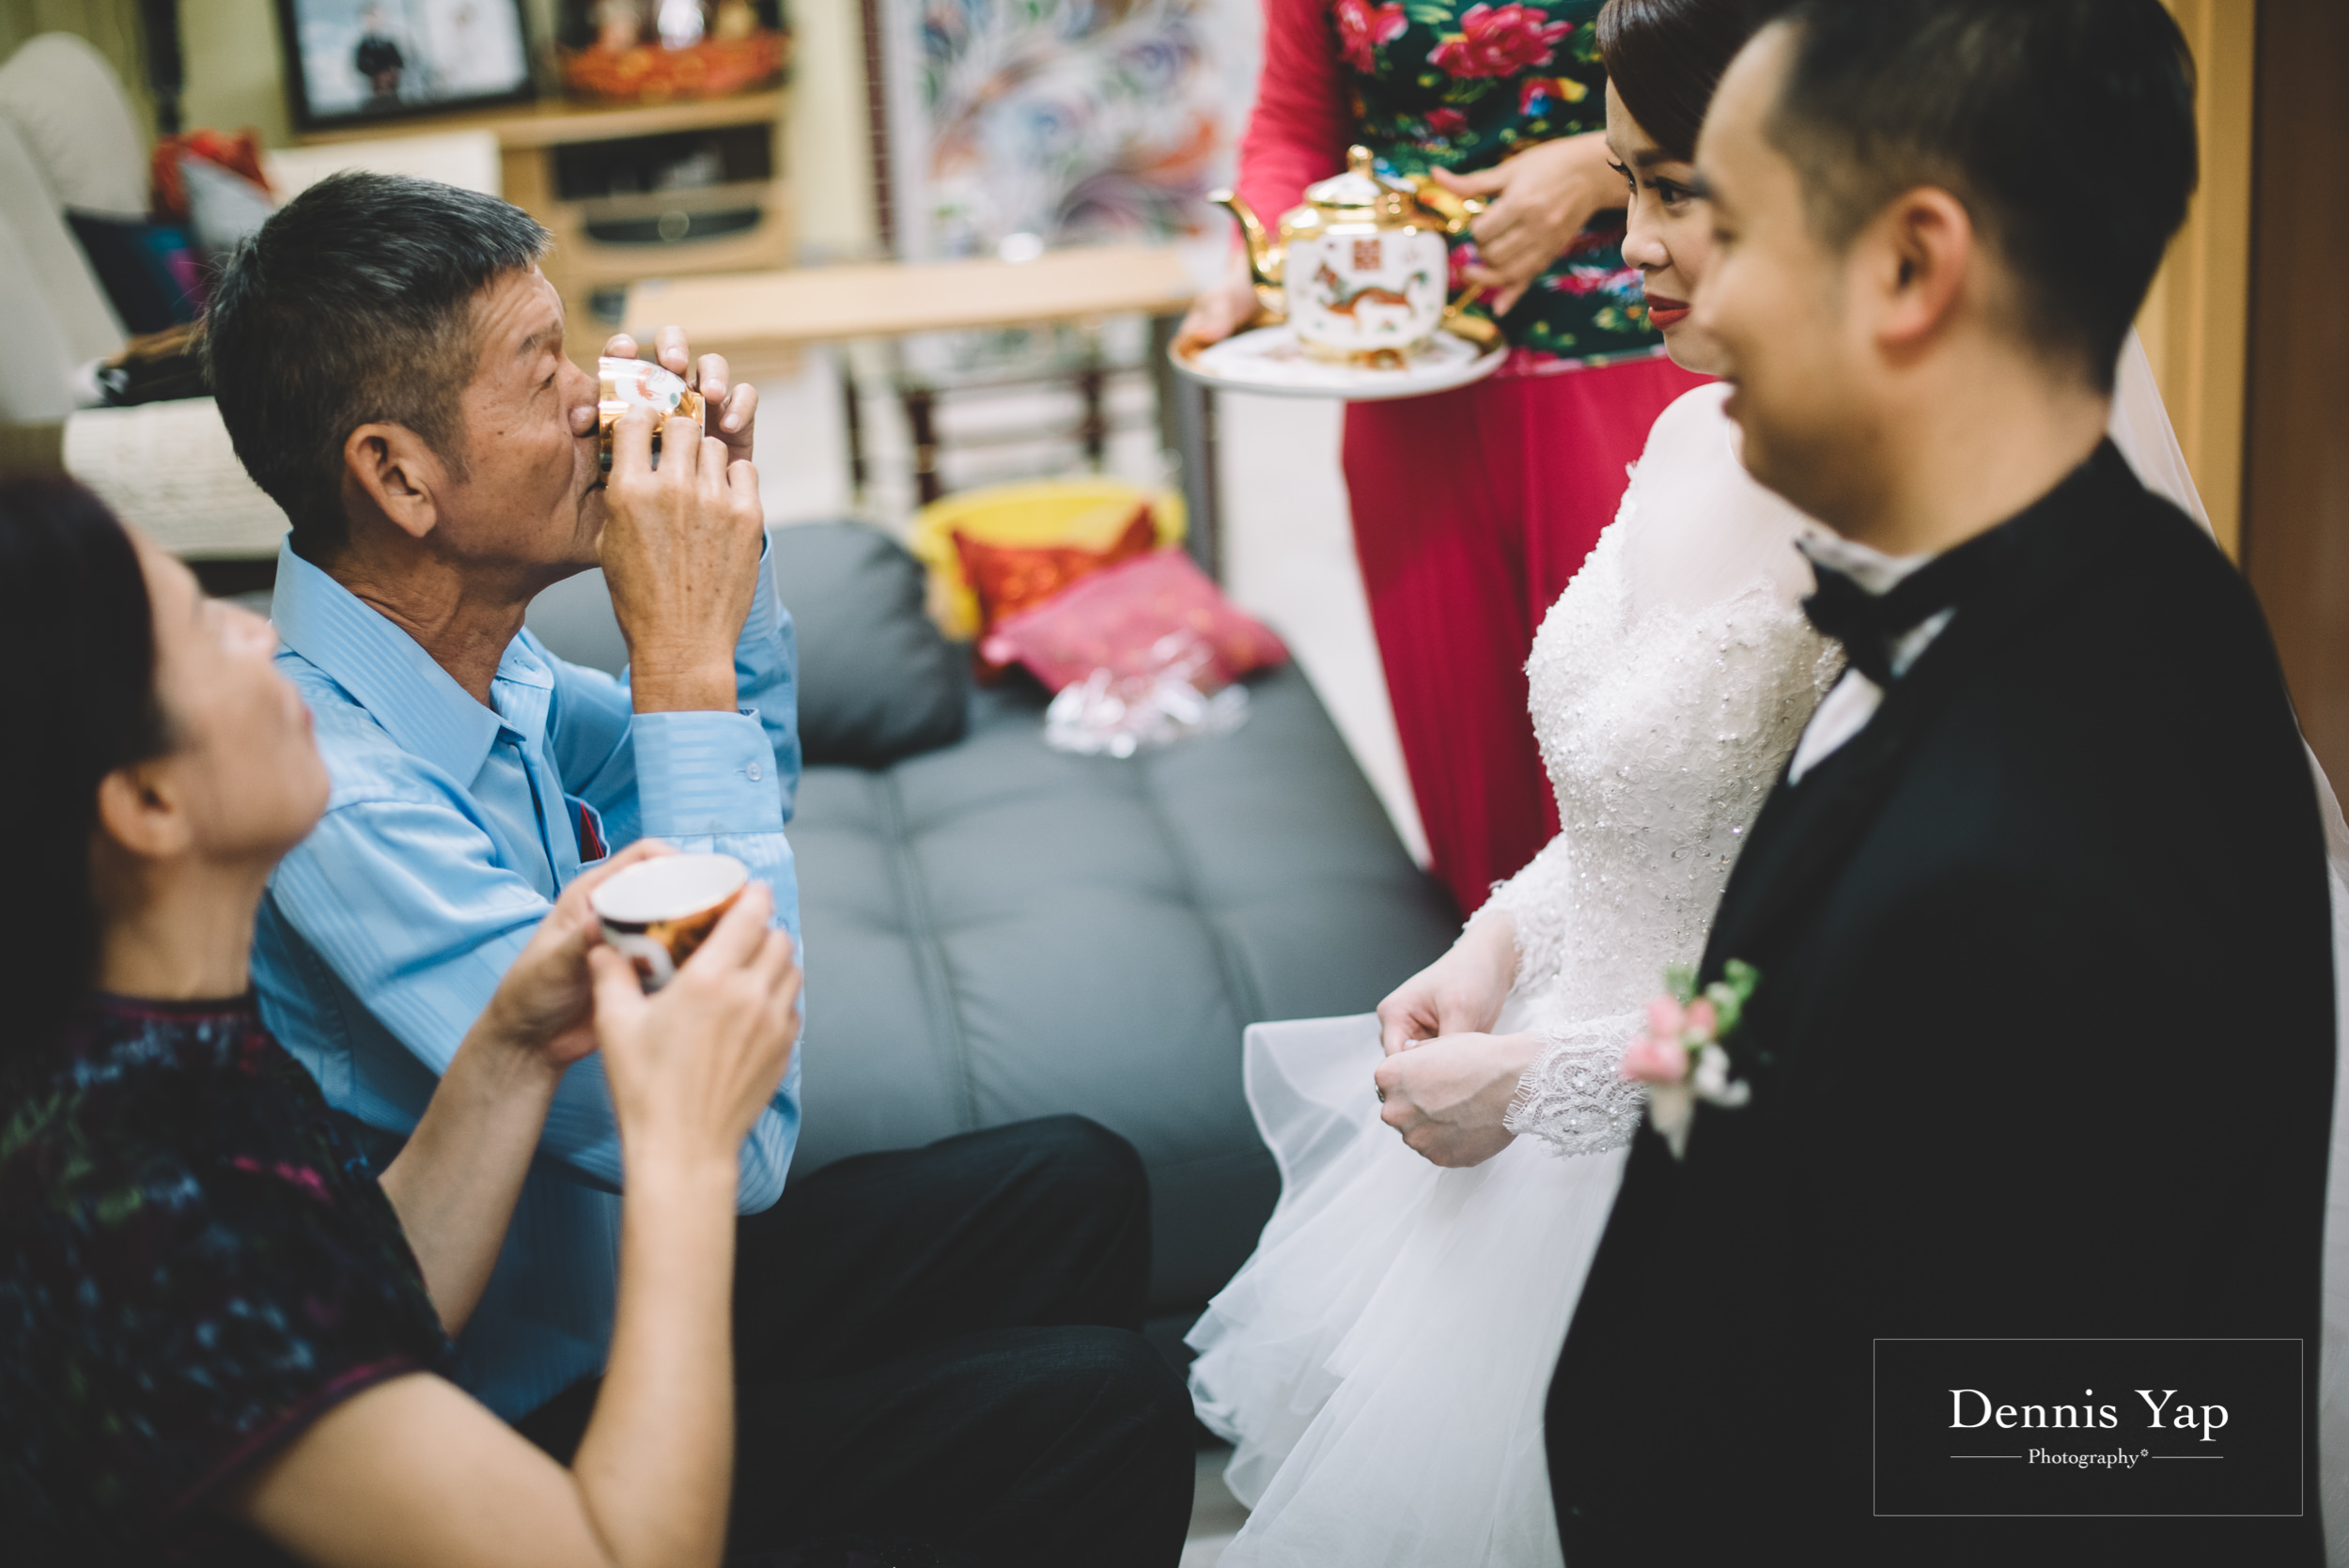 marcus emily wedding day gift exchange malaysia dennis yap photography-13.jpg